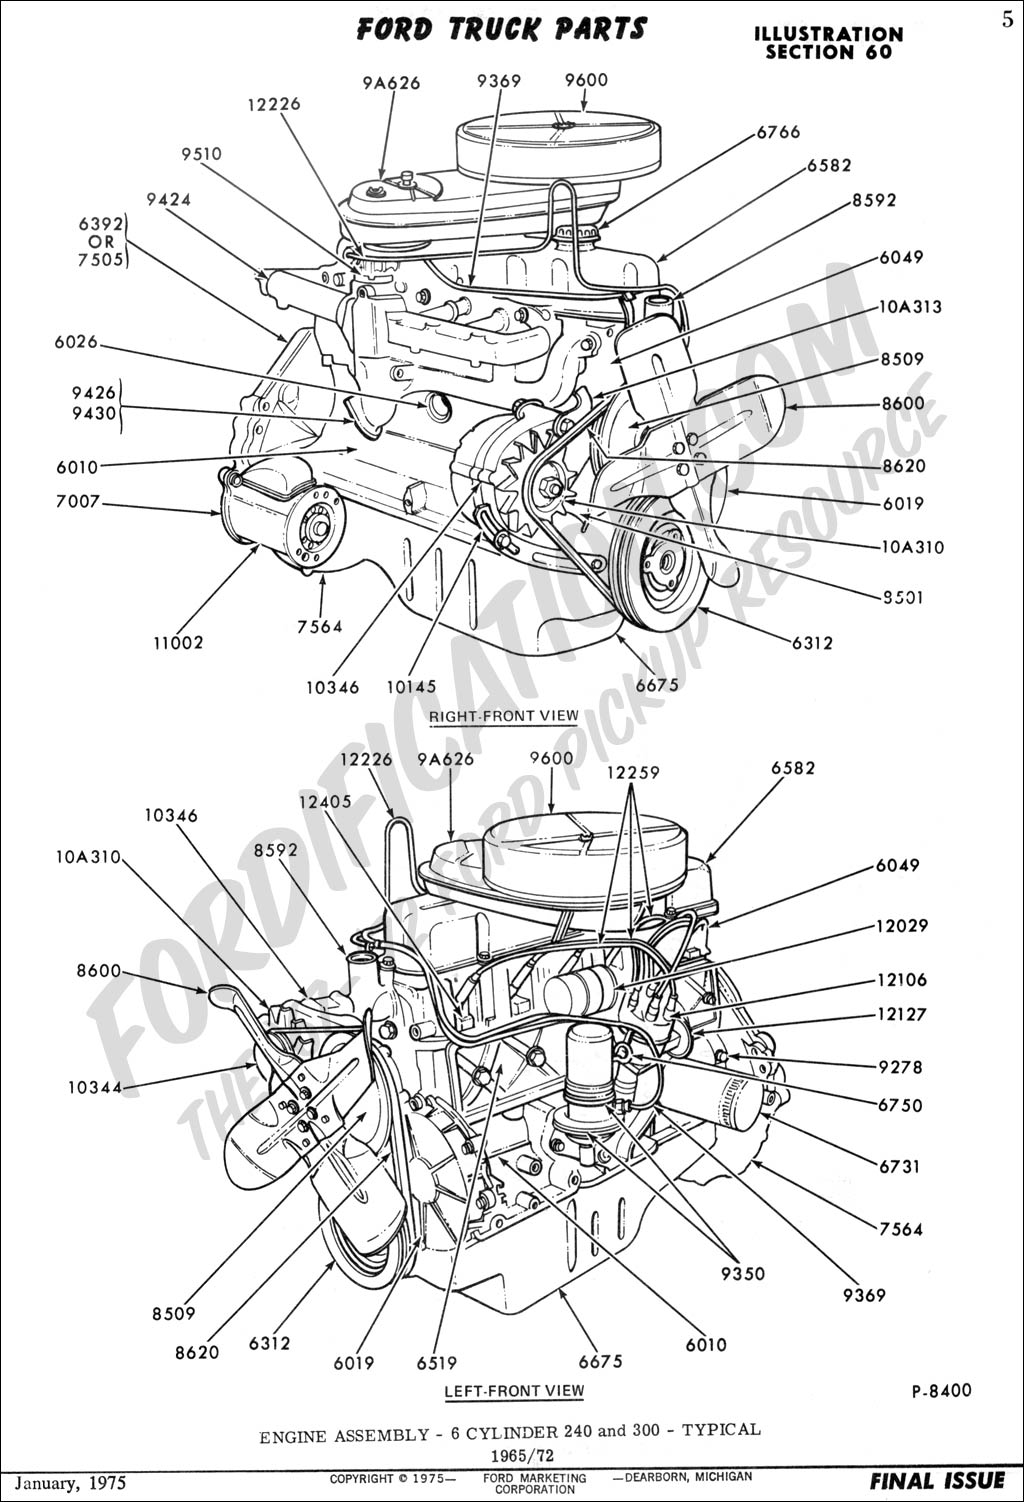 2002 Isuzu Axiom Suv Wiring Diagrams in addition 577617 How Can I Tell If I Have Ballast Resistor Ignition Wire additionally 83nf8 Chevrolet Silverado 1500 1994 Chevy Silverado 1500 4x4 1500 likewise 95 Isuzu Rodeo Wiring Diagram Lights in addition 1989 Nissan D21 Wiring Diagram. on 1990 isuzu pickup wiring diagram html